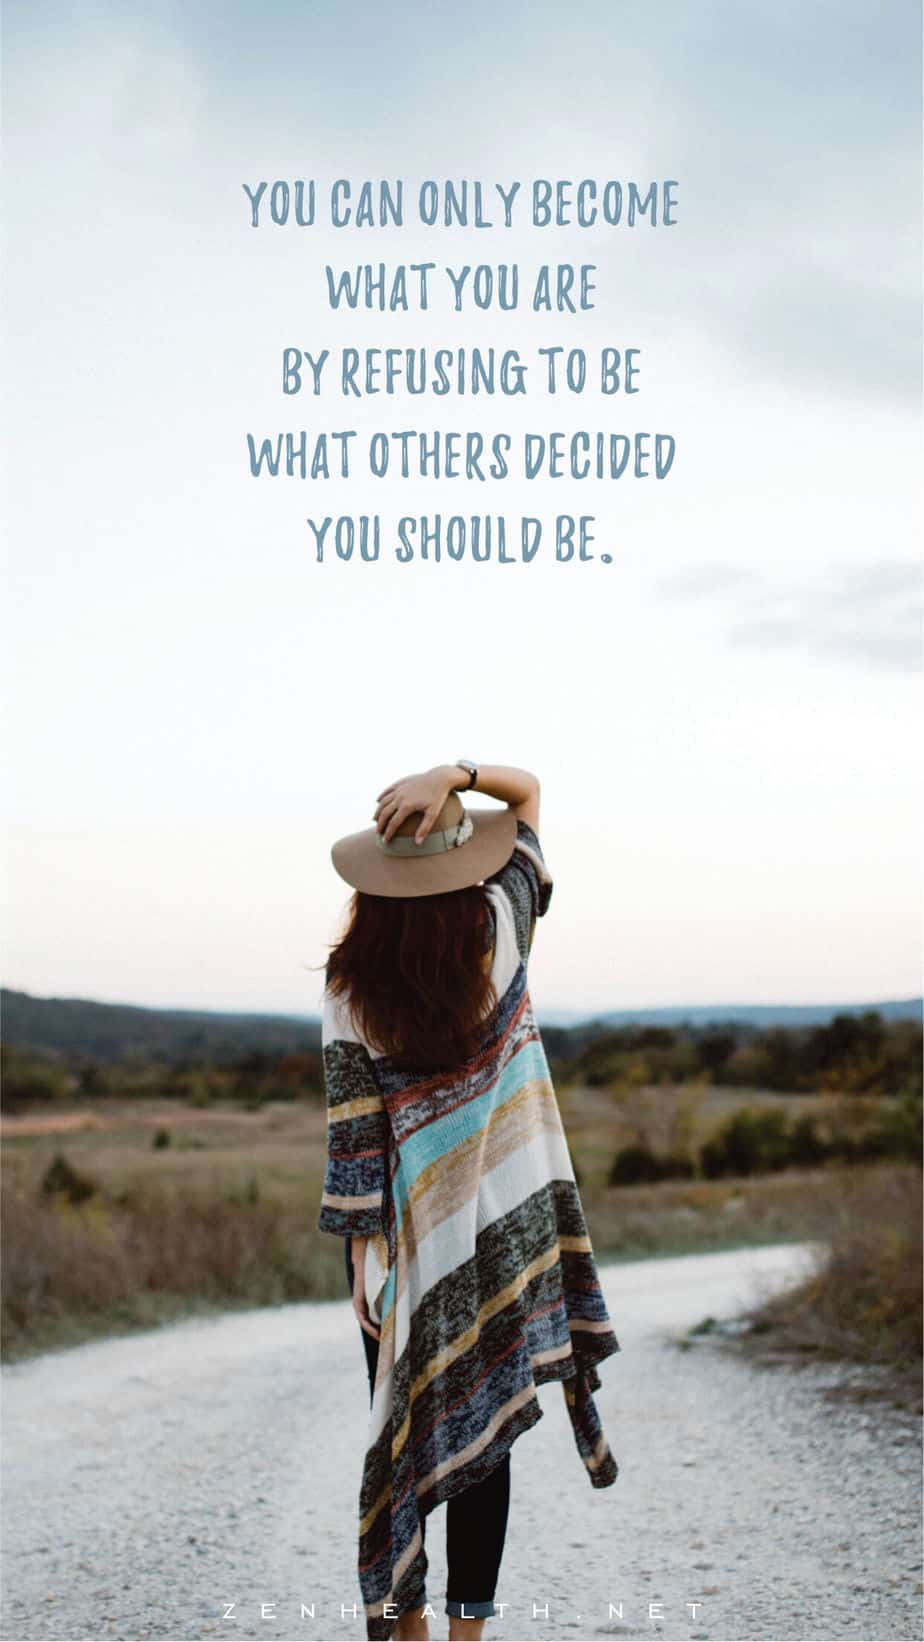 Self confidence quotes: You can only become what you are by refusing to be what others decided you should be.